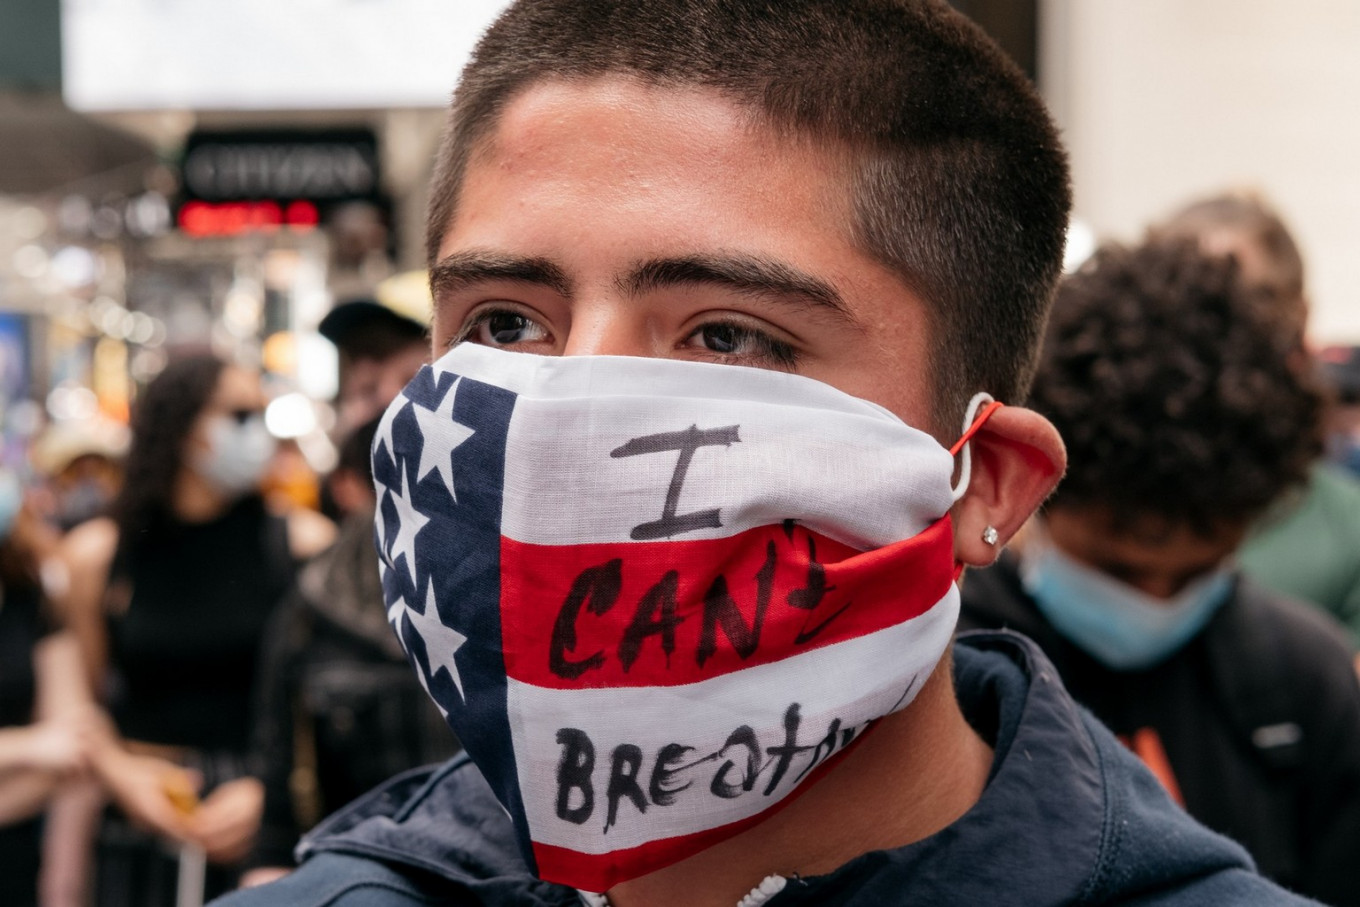 """A young man wears a mask that reads """"I Can't Breathe"""" during a rally in Times Square denouncing racism in law enforcement and the May 25 killing of George Floyd while in the custody of Minneapolis, on June 1, 2020 in New York City. Days of protest, sometimes violent, have followed in many cities across the country.   AFP/Getty Images/Scott Heins"""